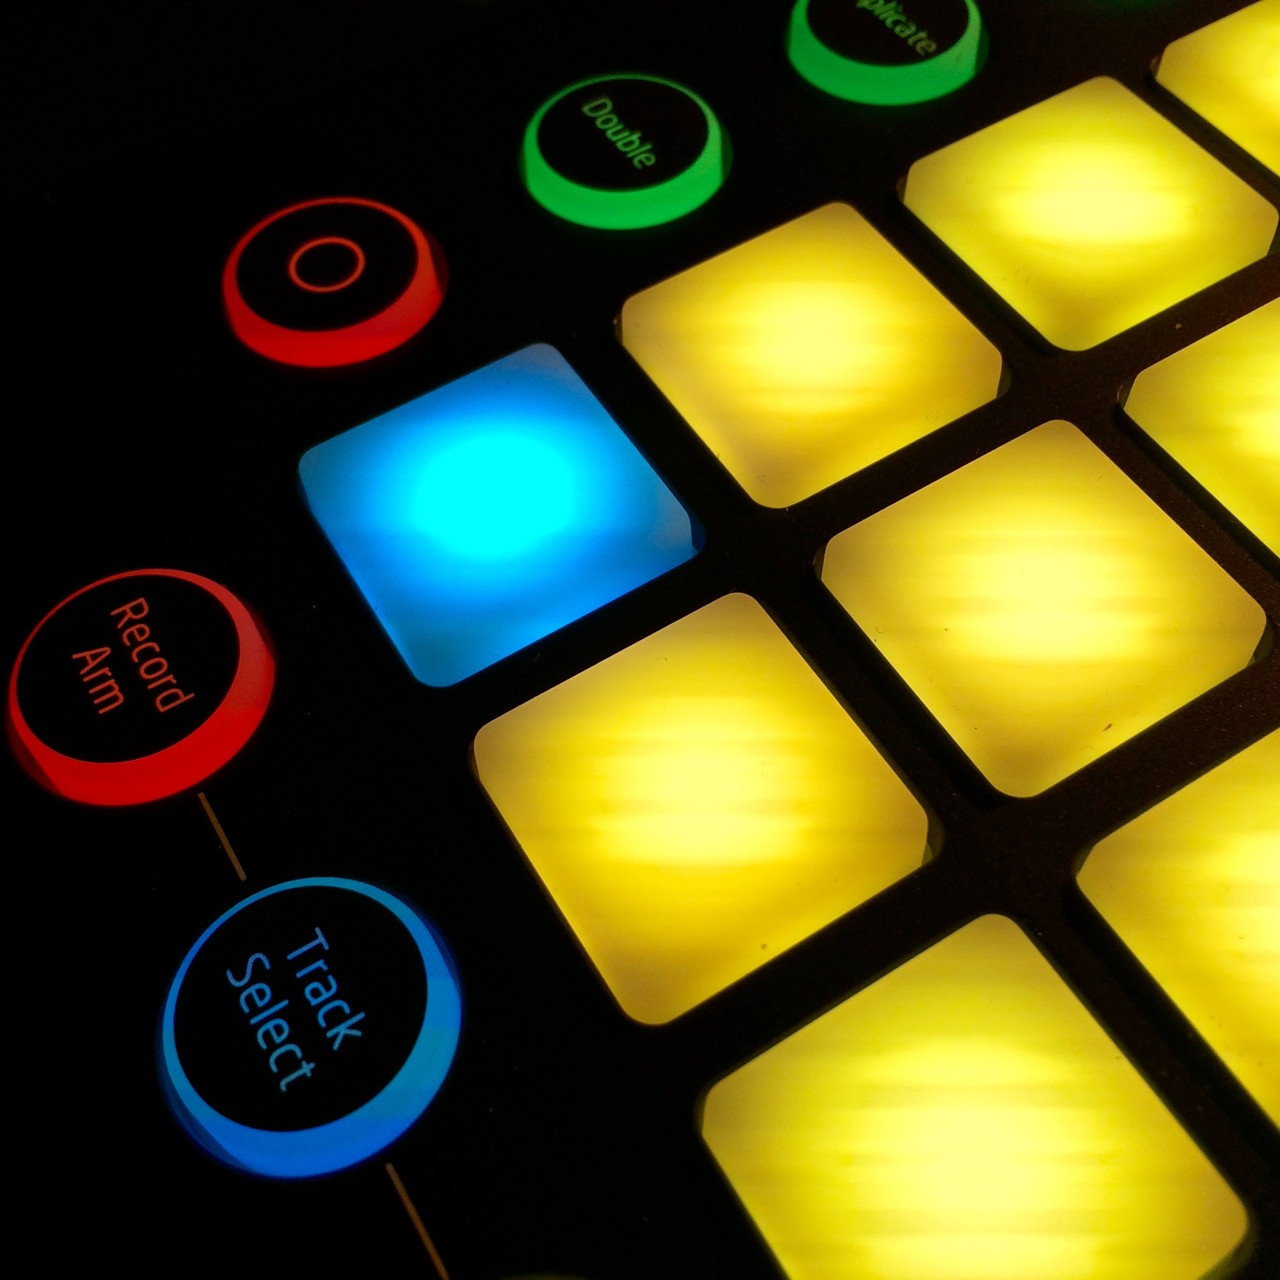 Launchpad Pro Grid Controller: Hands-on Comprehensive Guide